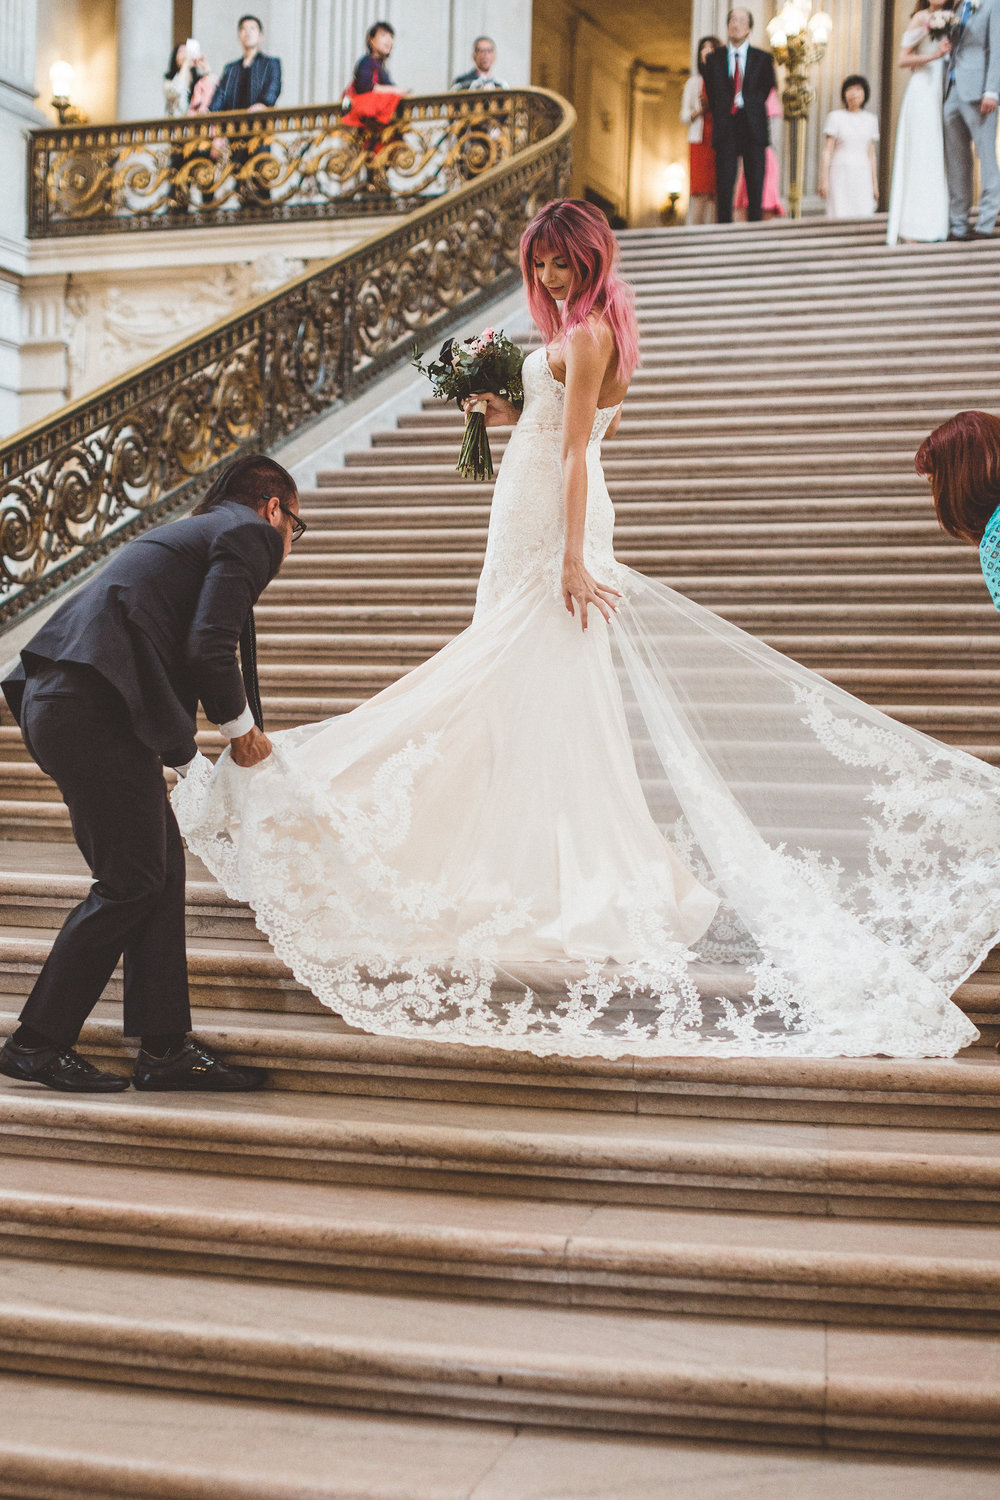 kris-and-andreas-san-francisco-elopement-adventure17.jpg